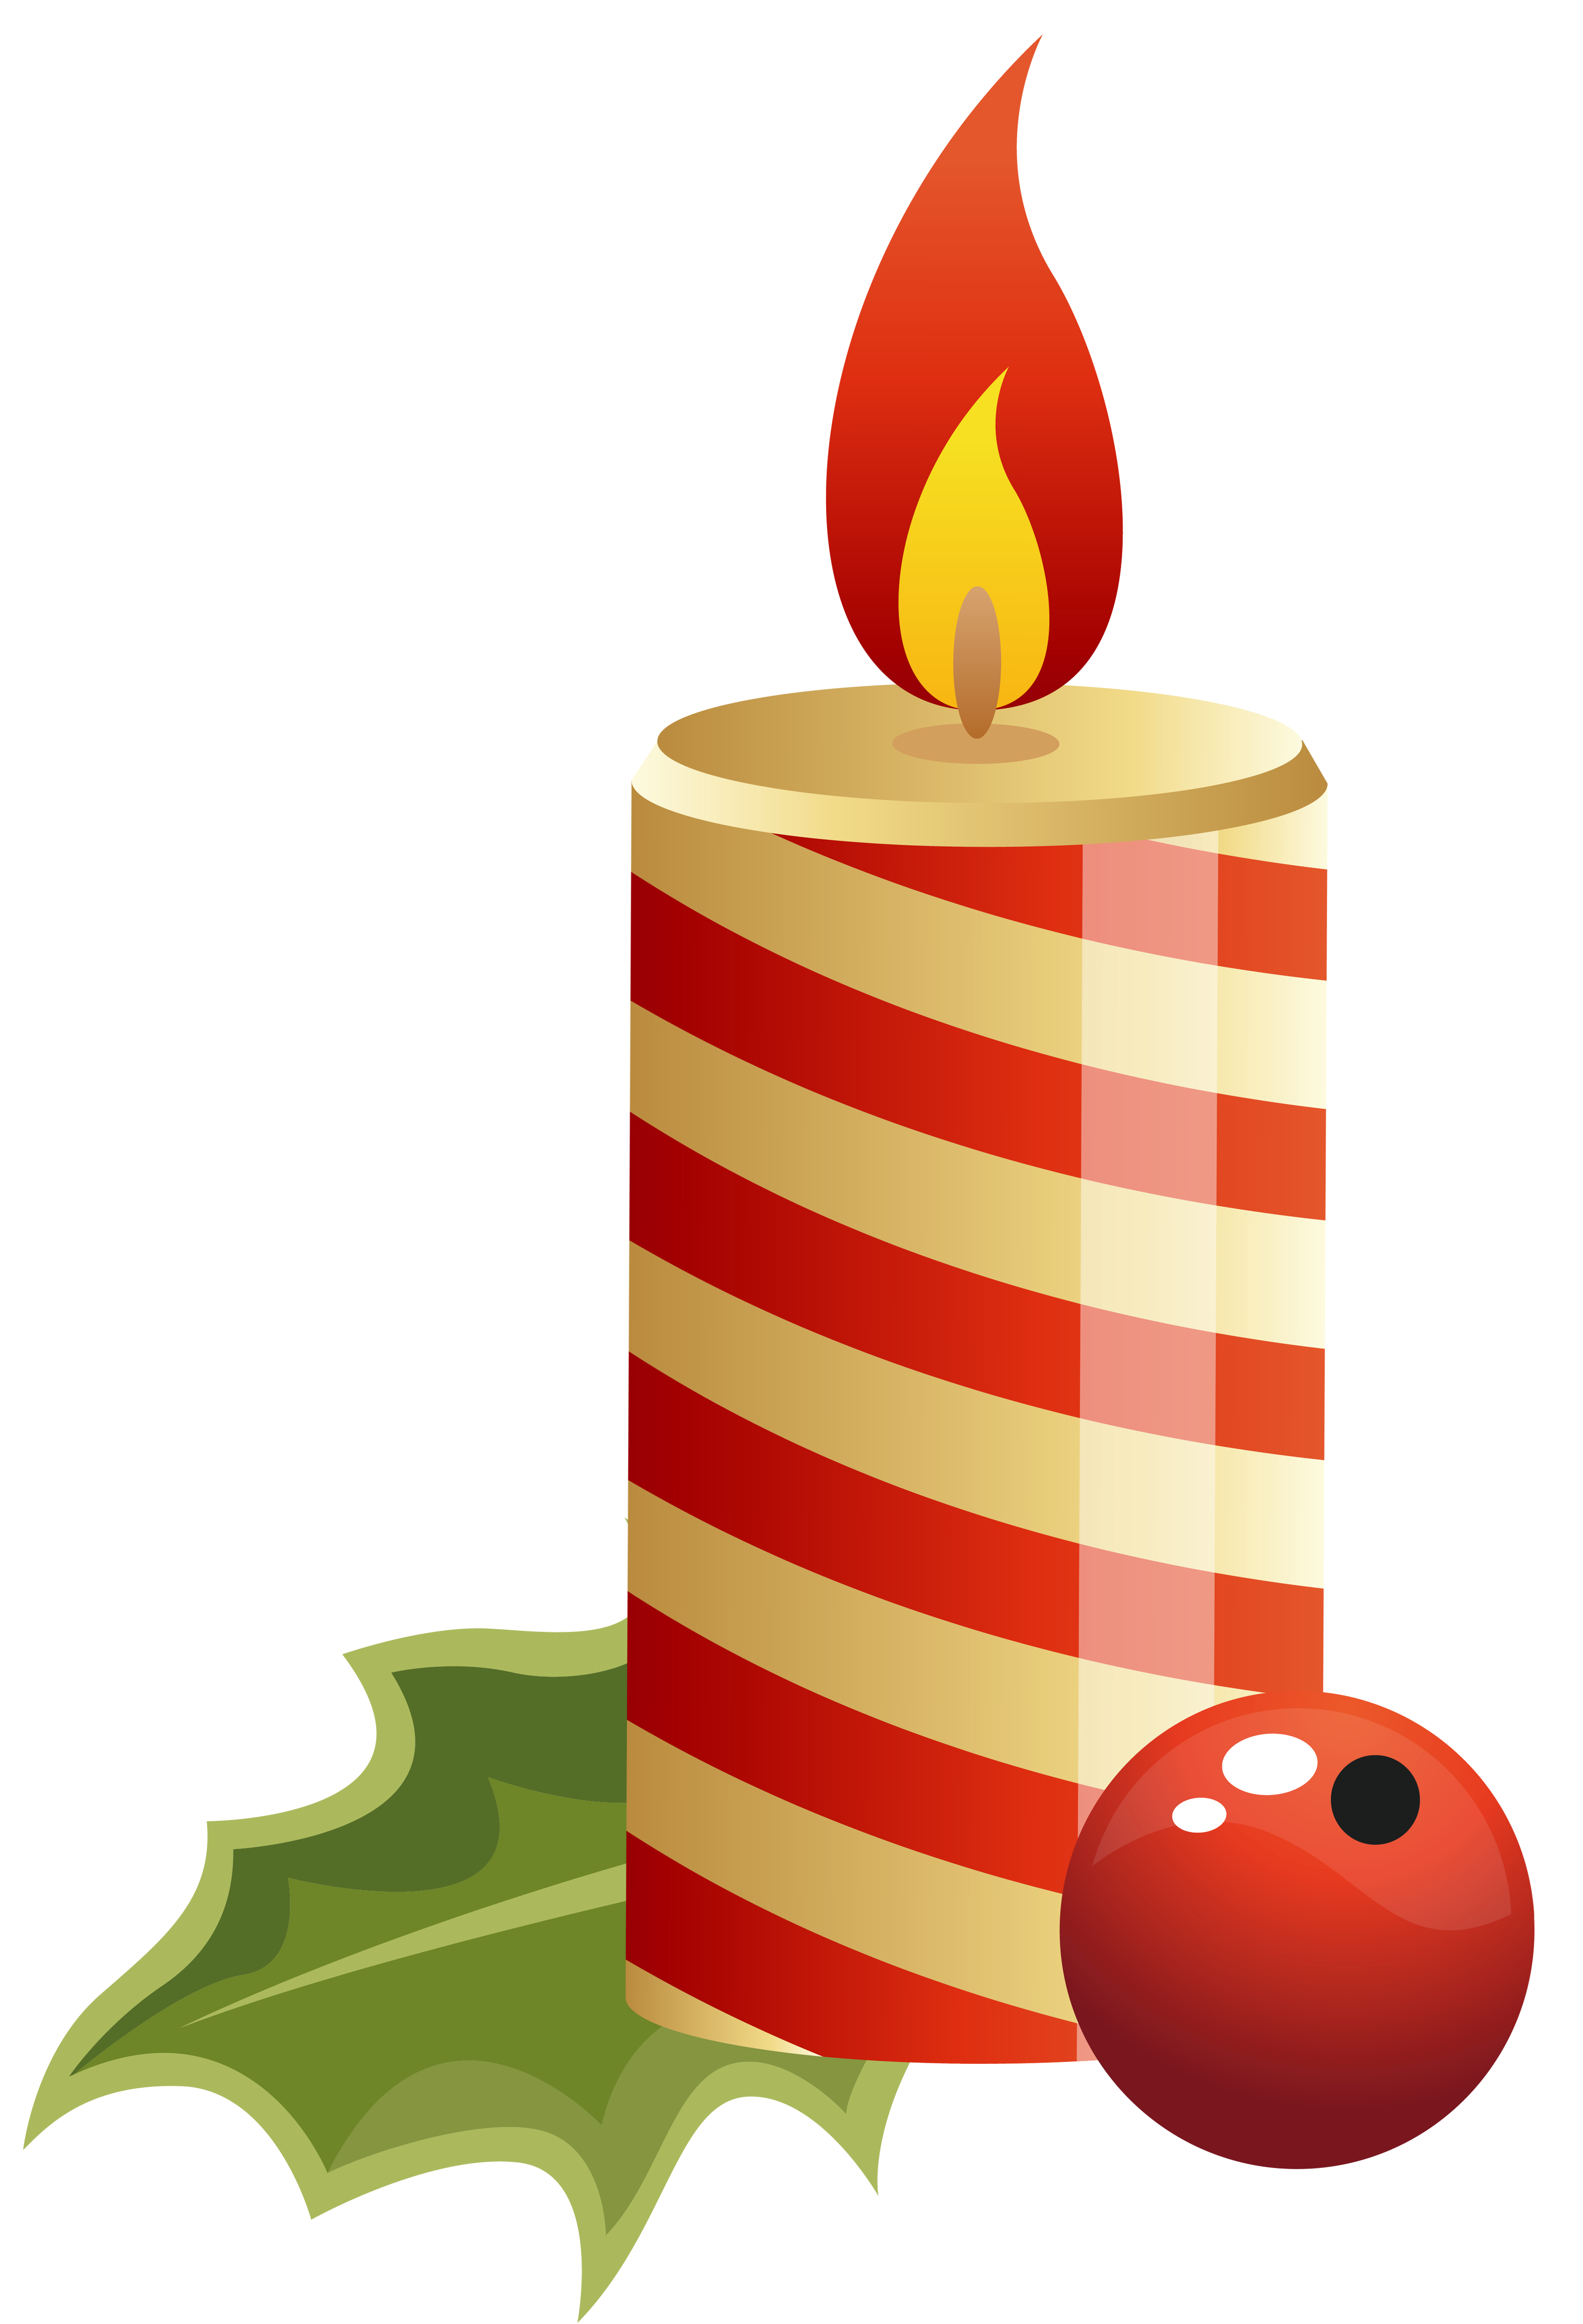 Christmas candlelight clipart jpg freeuse library Candle Clipart at GetDrawings.com | Free for personal use Candle ... jpg freeuse library